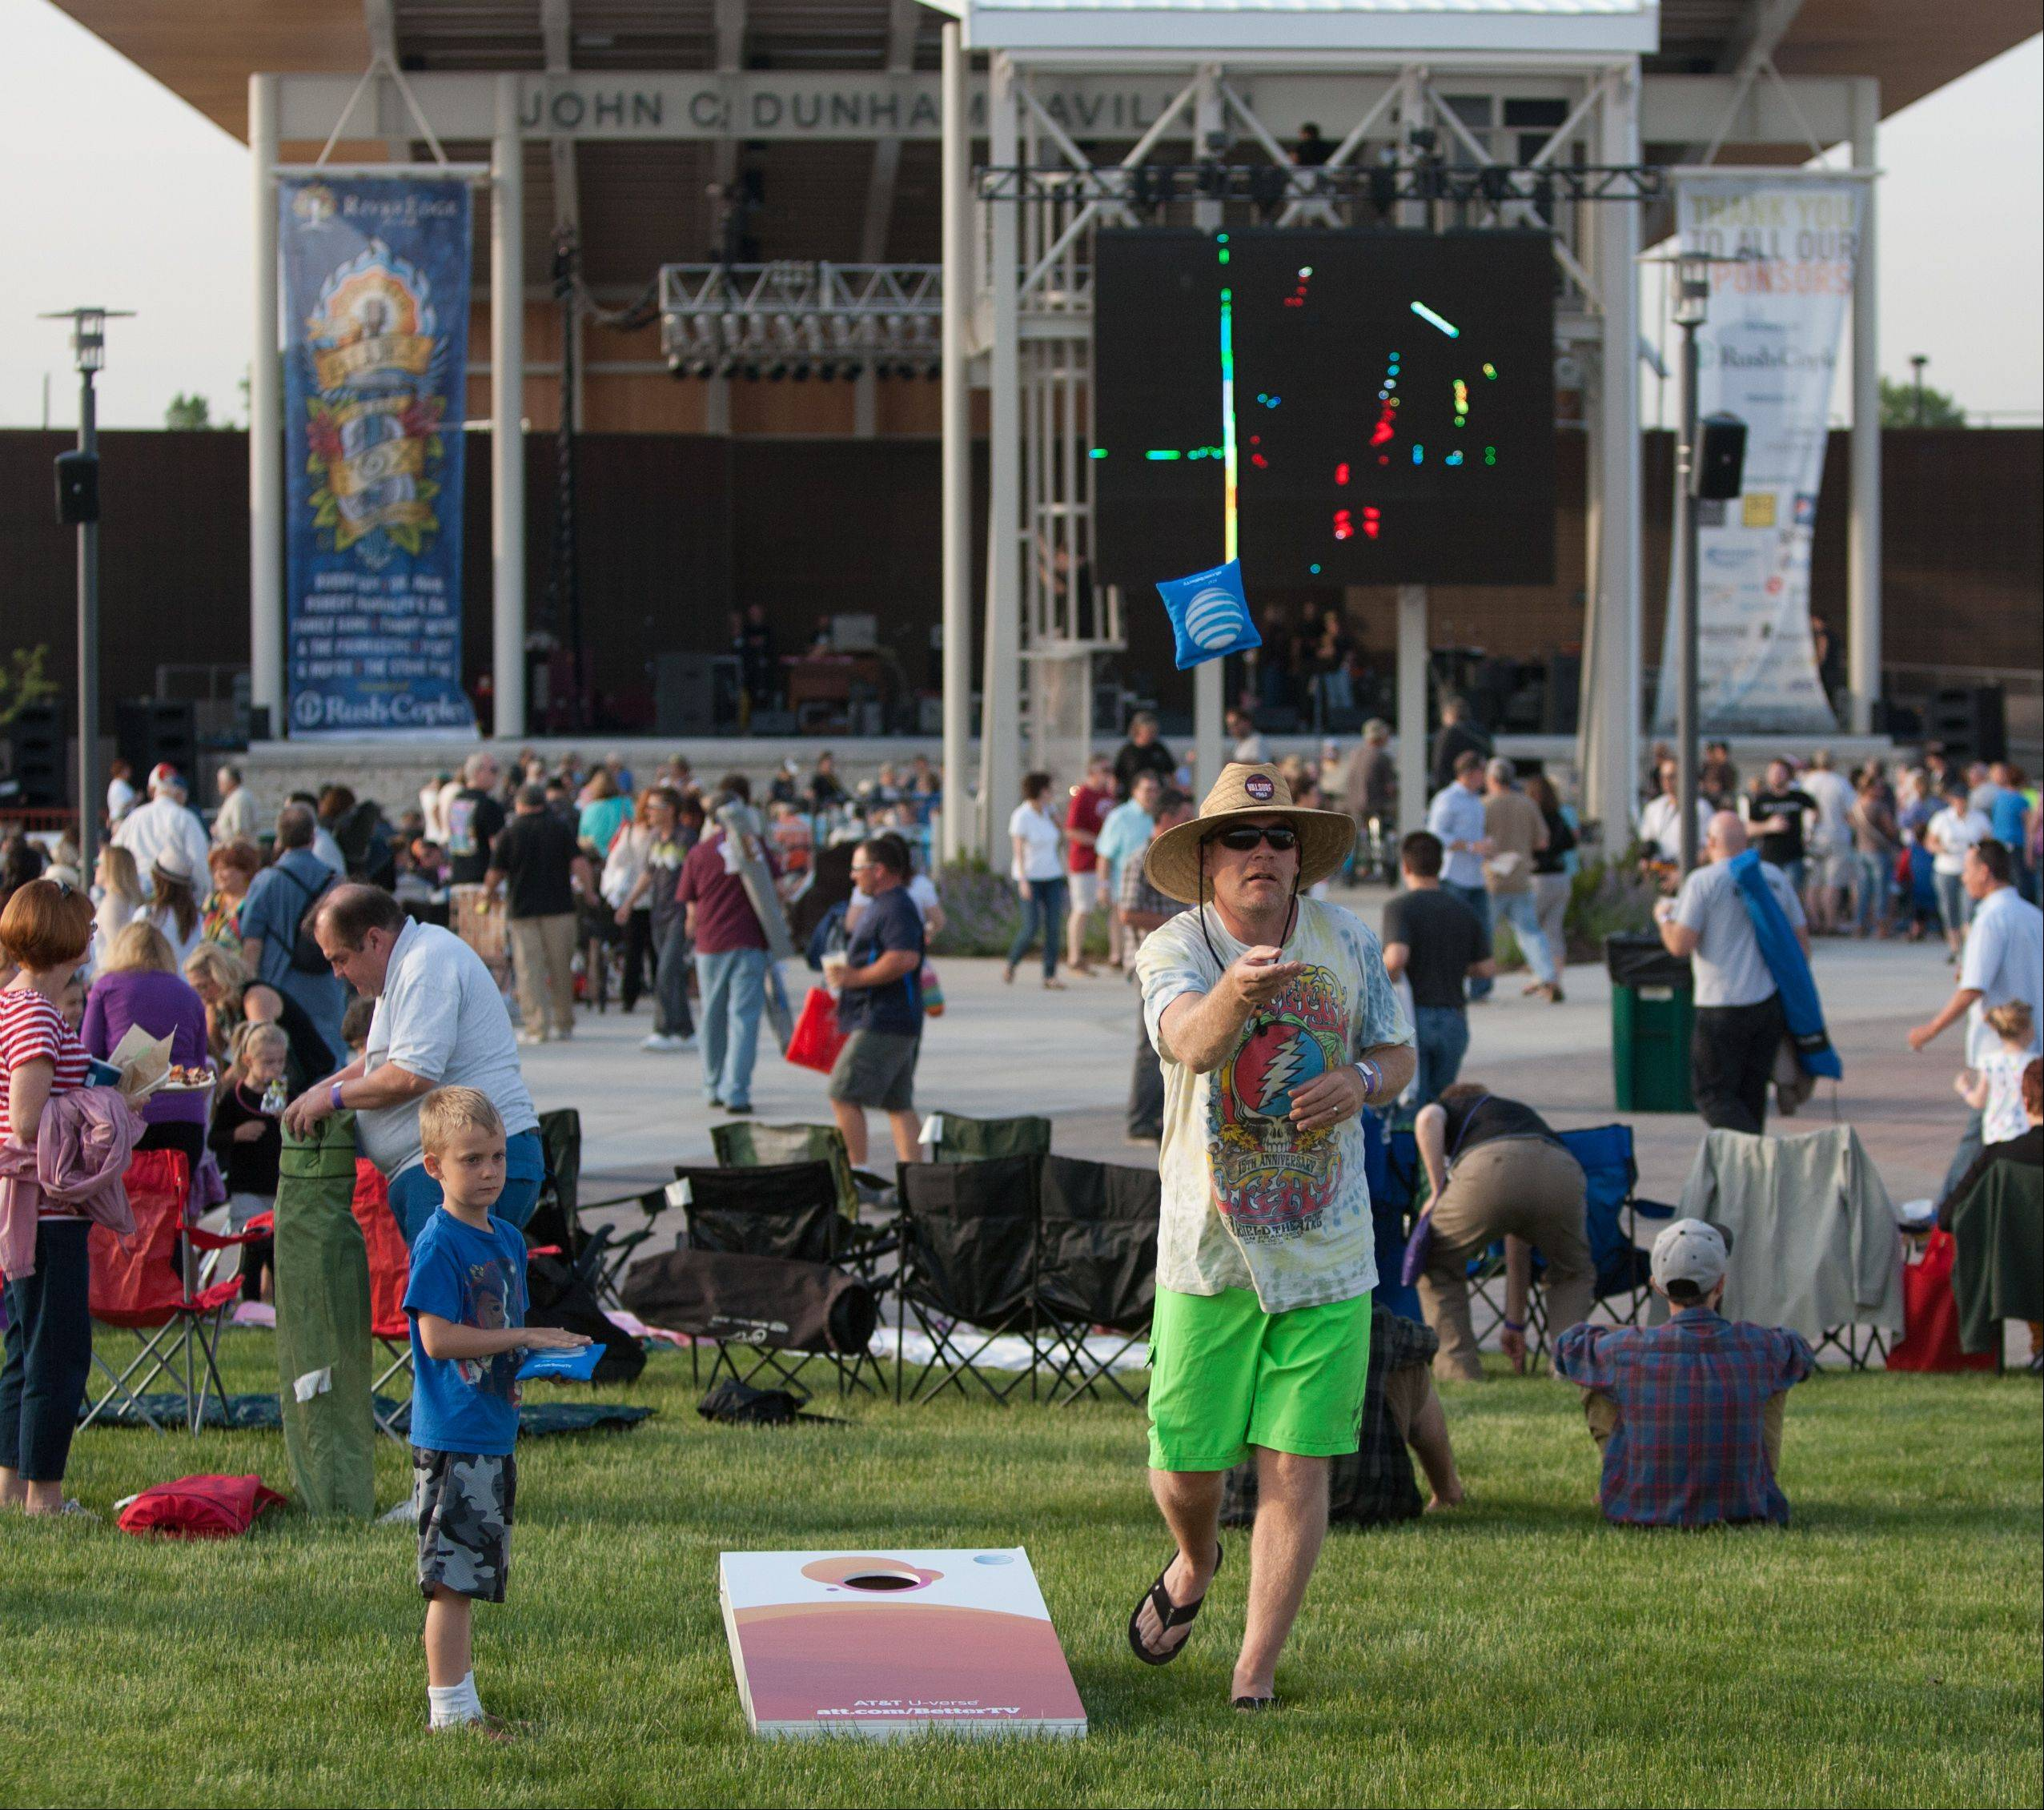 RiverEdge Park, an $18.5 million open space featuring a $13.2 million outdoor performance venue, opened June 14 in Aurora, revitalizing a stretch of Fox River shoreline along Broadway Avenue north of downtown Aurora.